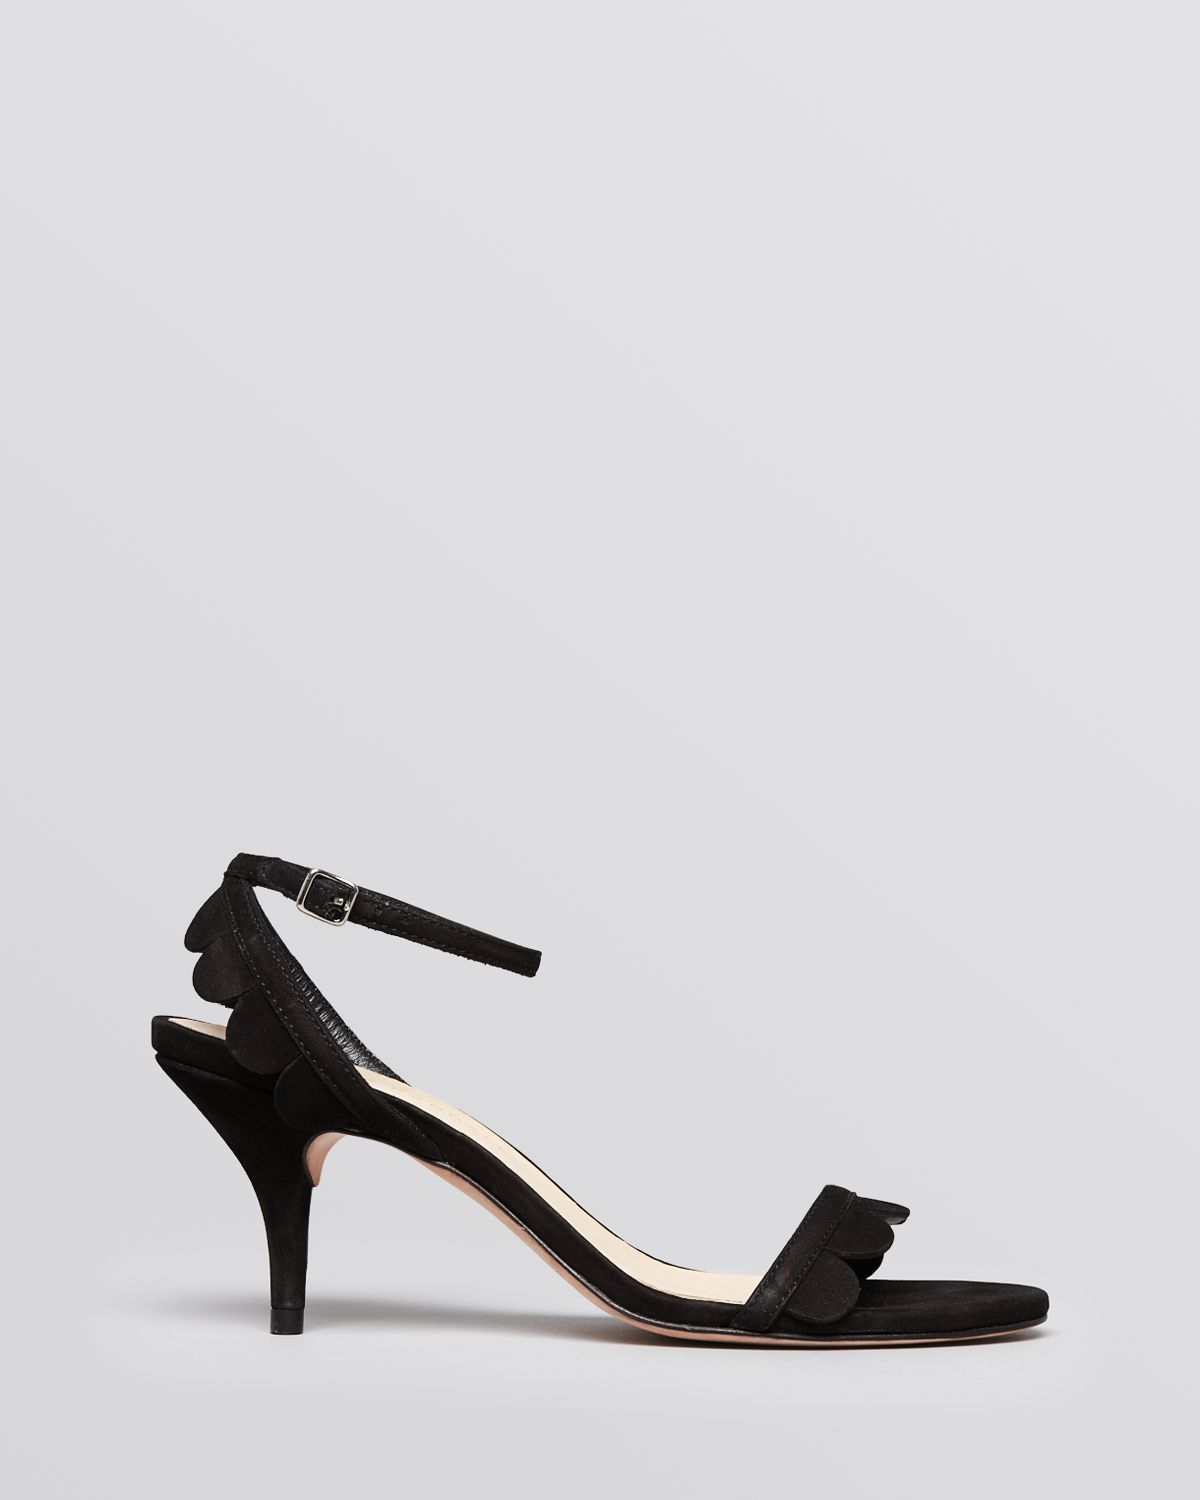 Loeffler randall Ankle Strap Sandals Lillit Scallop Mid Heel in